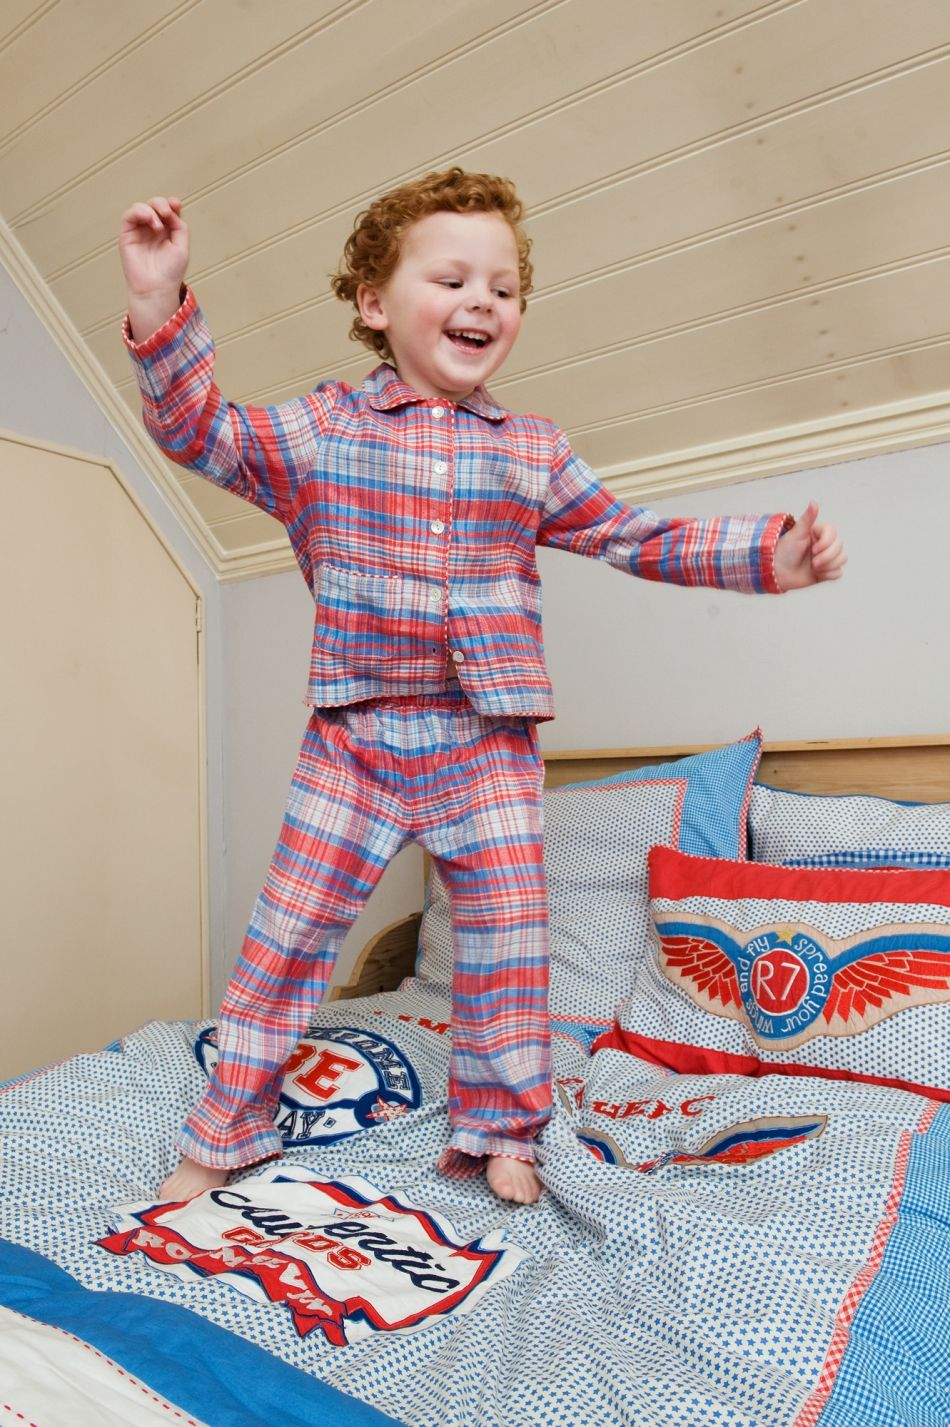 Room Seven Pajamas Nino Blue Red Beige Check - available at www.simplydutch.com - worldwide shipping